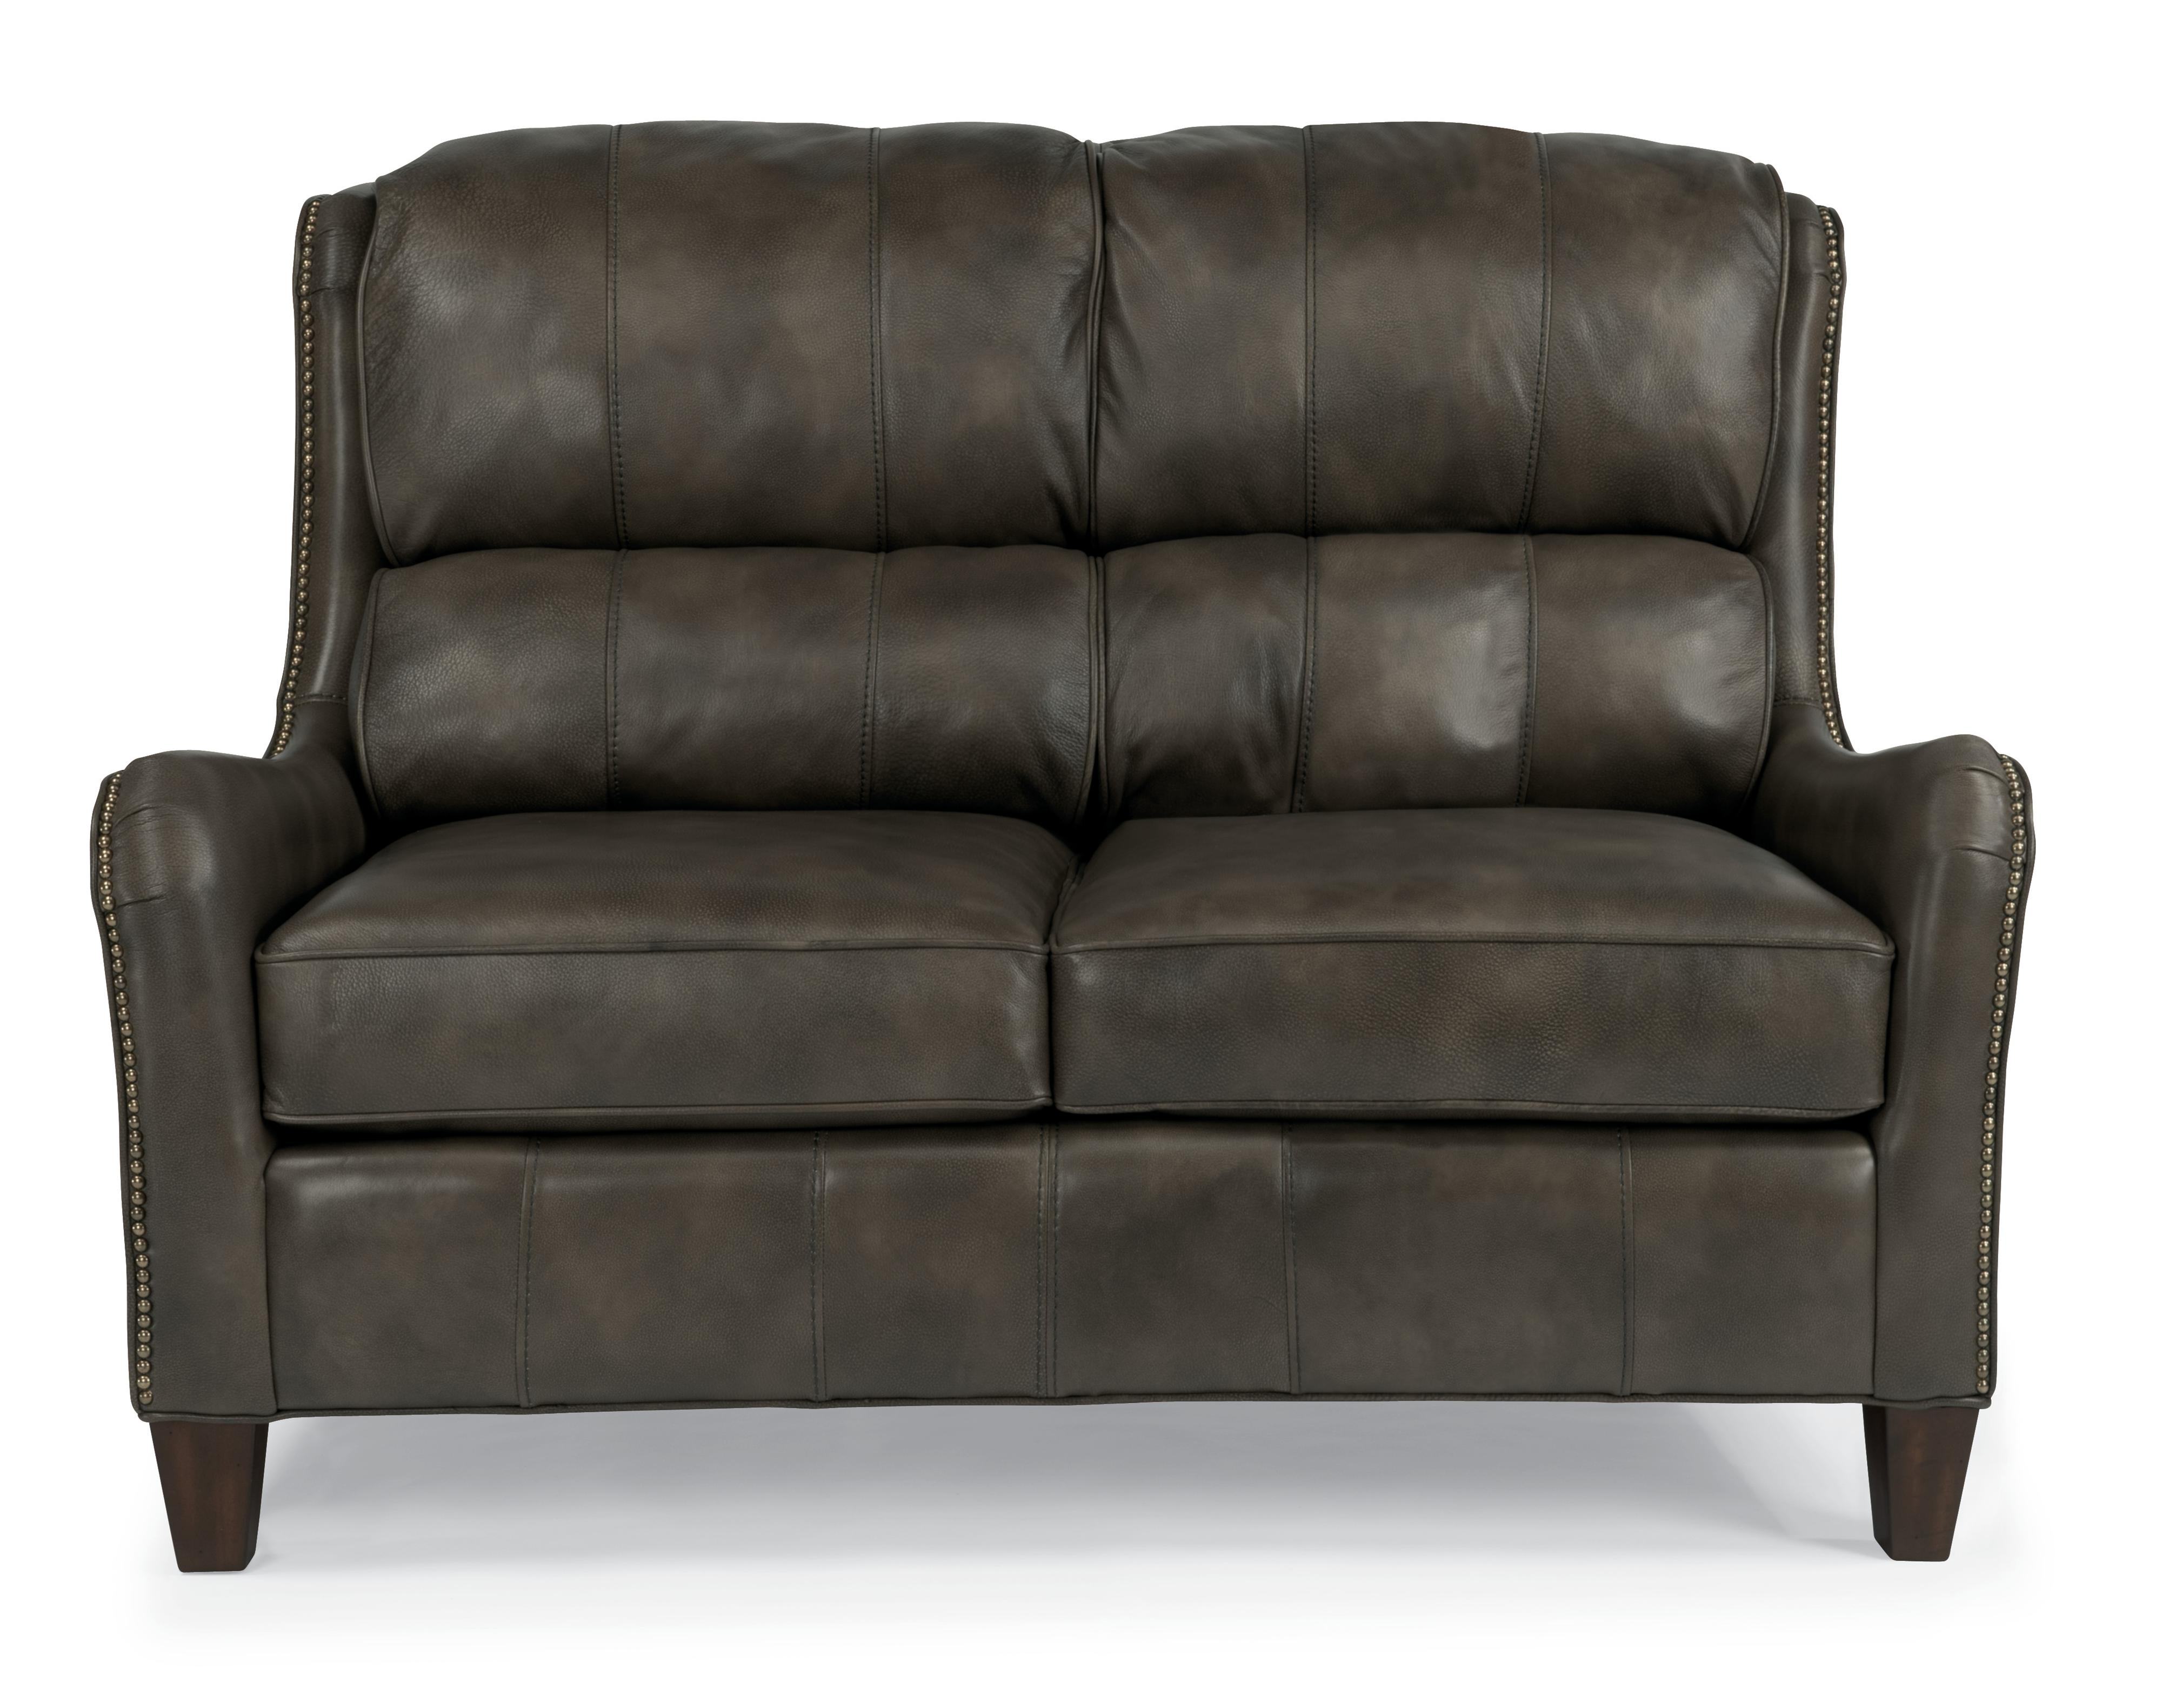 Flexsteel Latitudes-Lukas Loveseat - Item Number: 1136-20-418-04